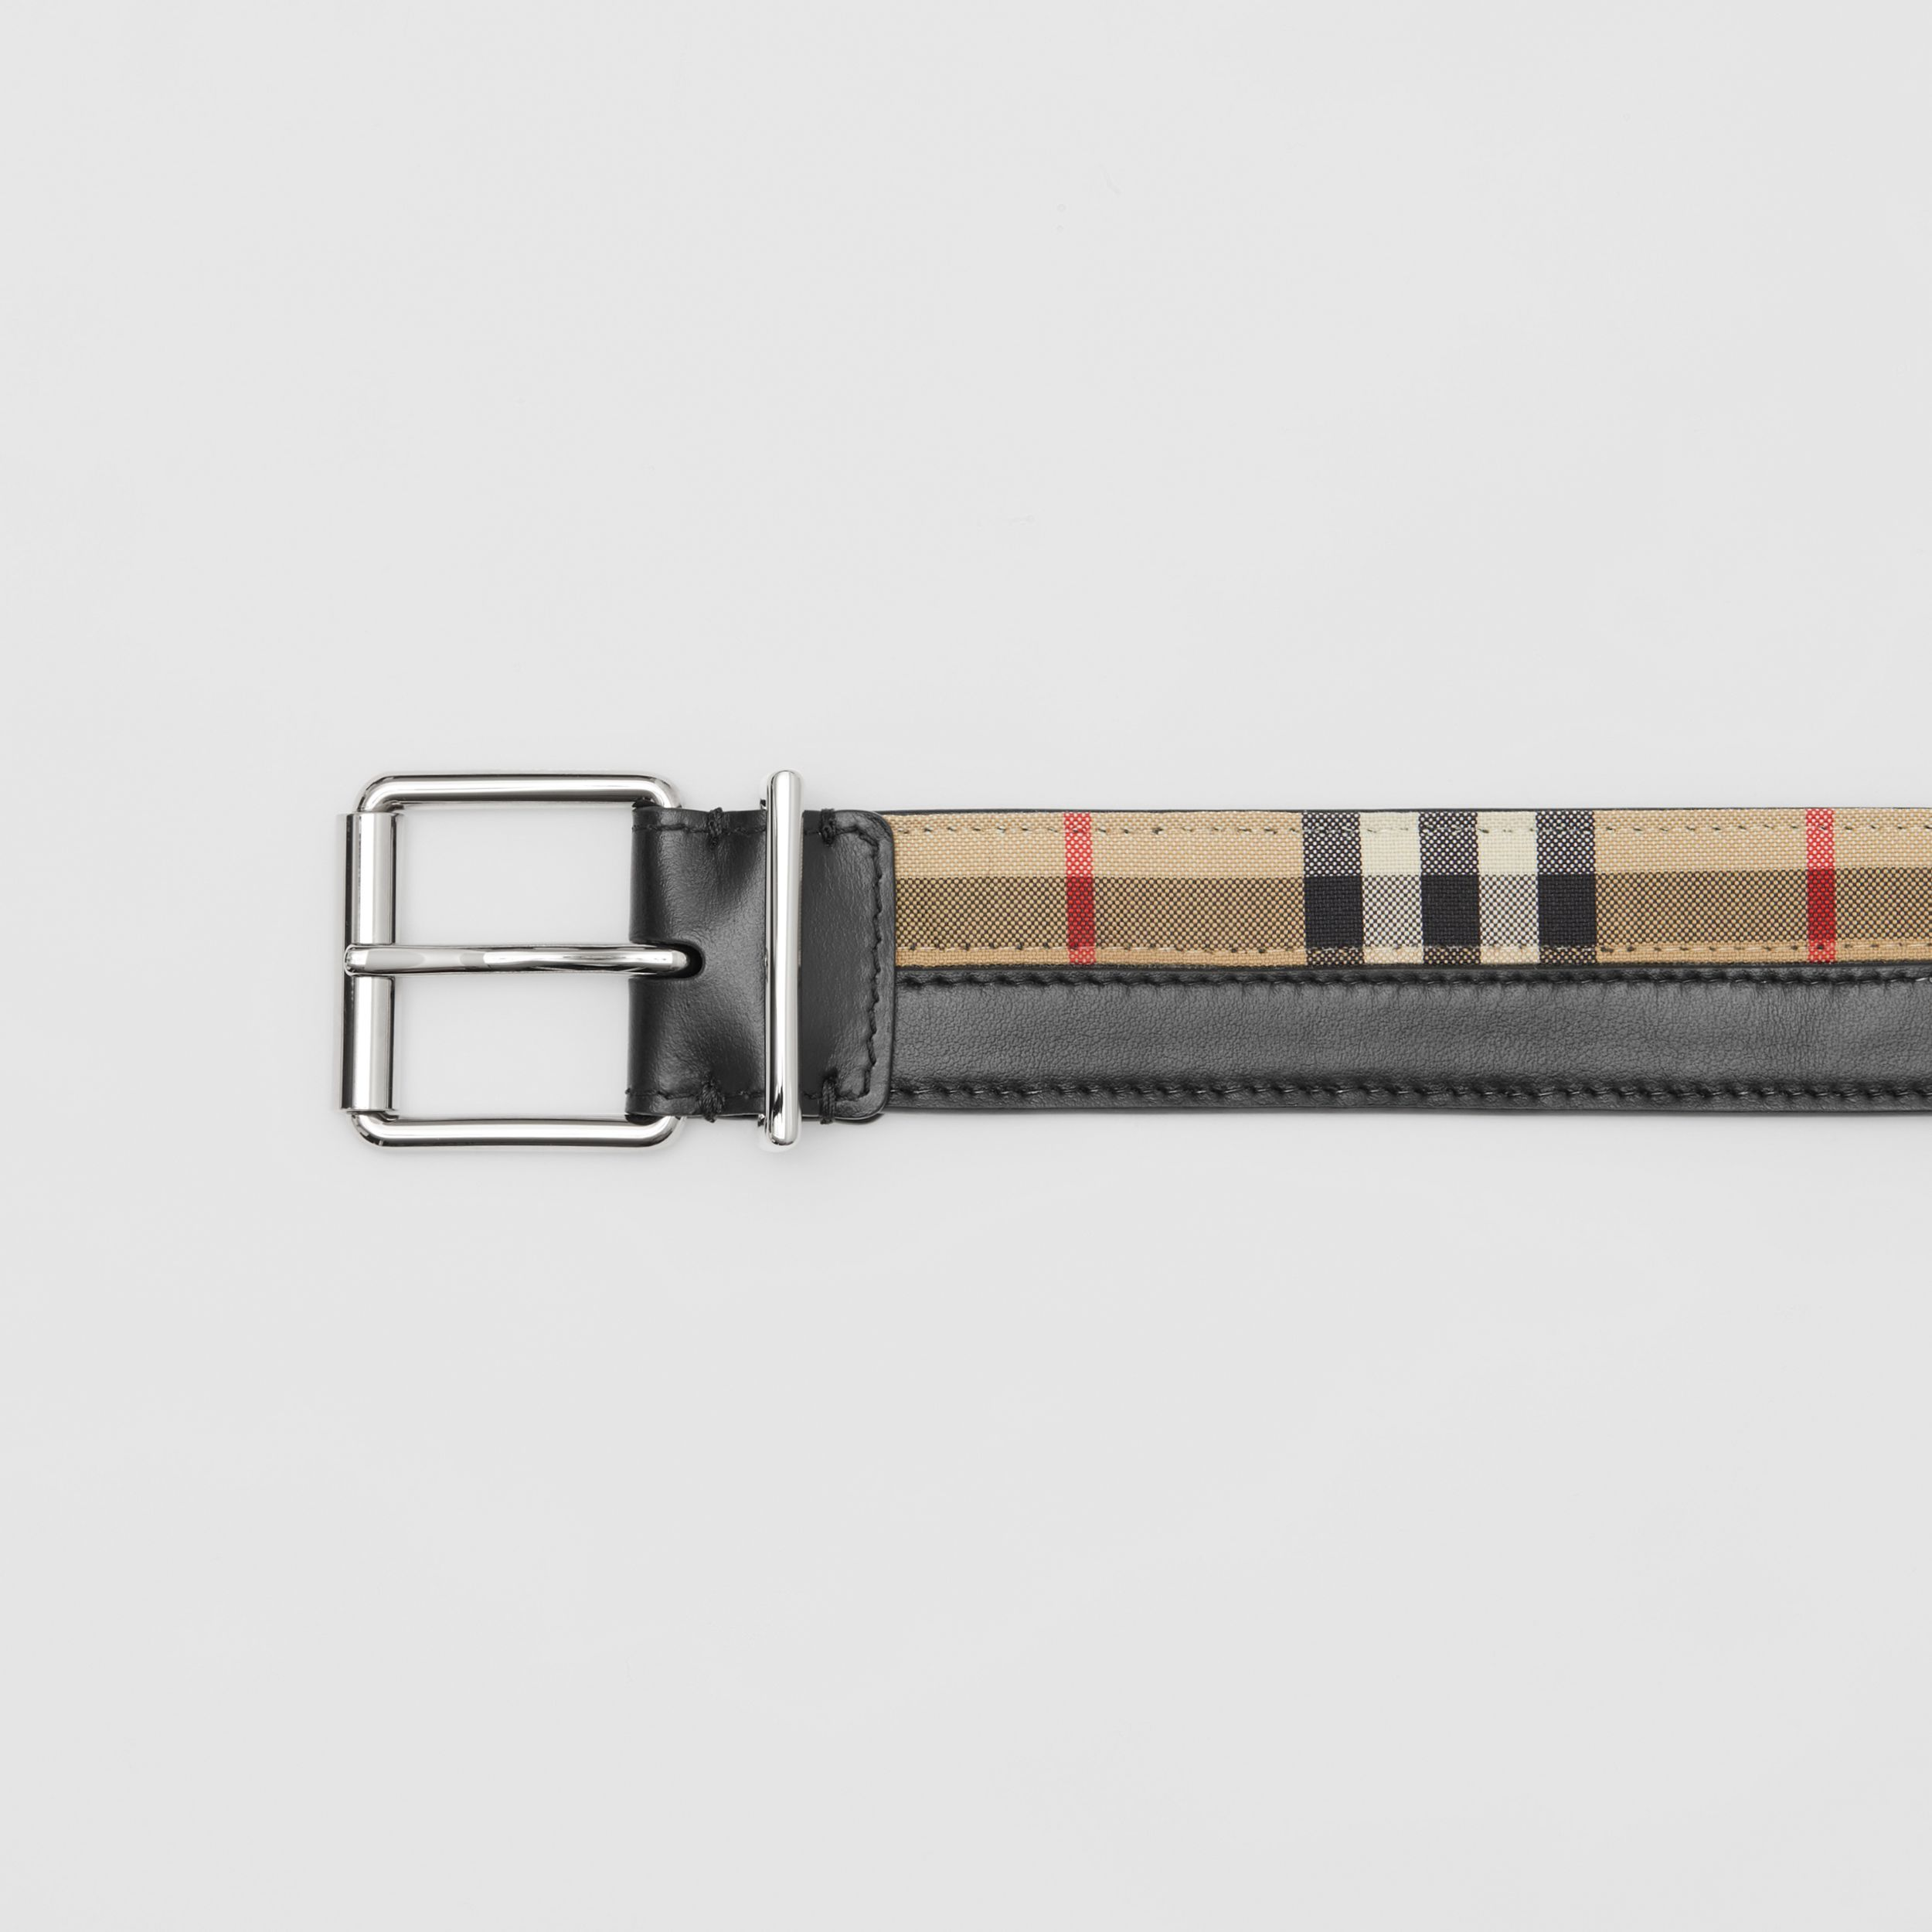 Logo Print Vintage Check and Leather Belt in Archive Beige/black - Men | Burberry Hong Kong S.A.R. - 2